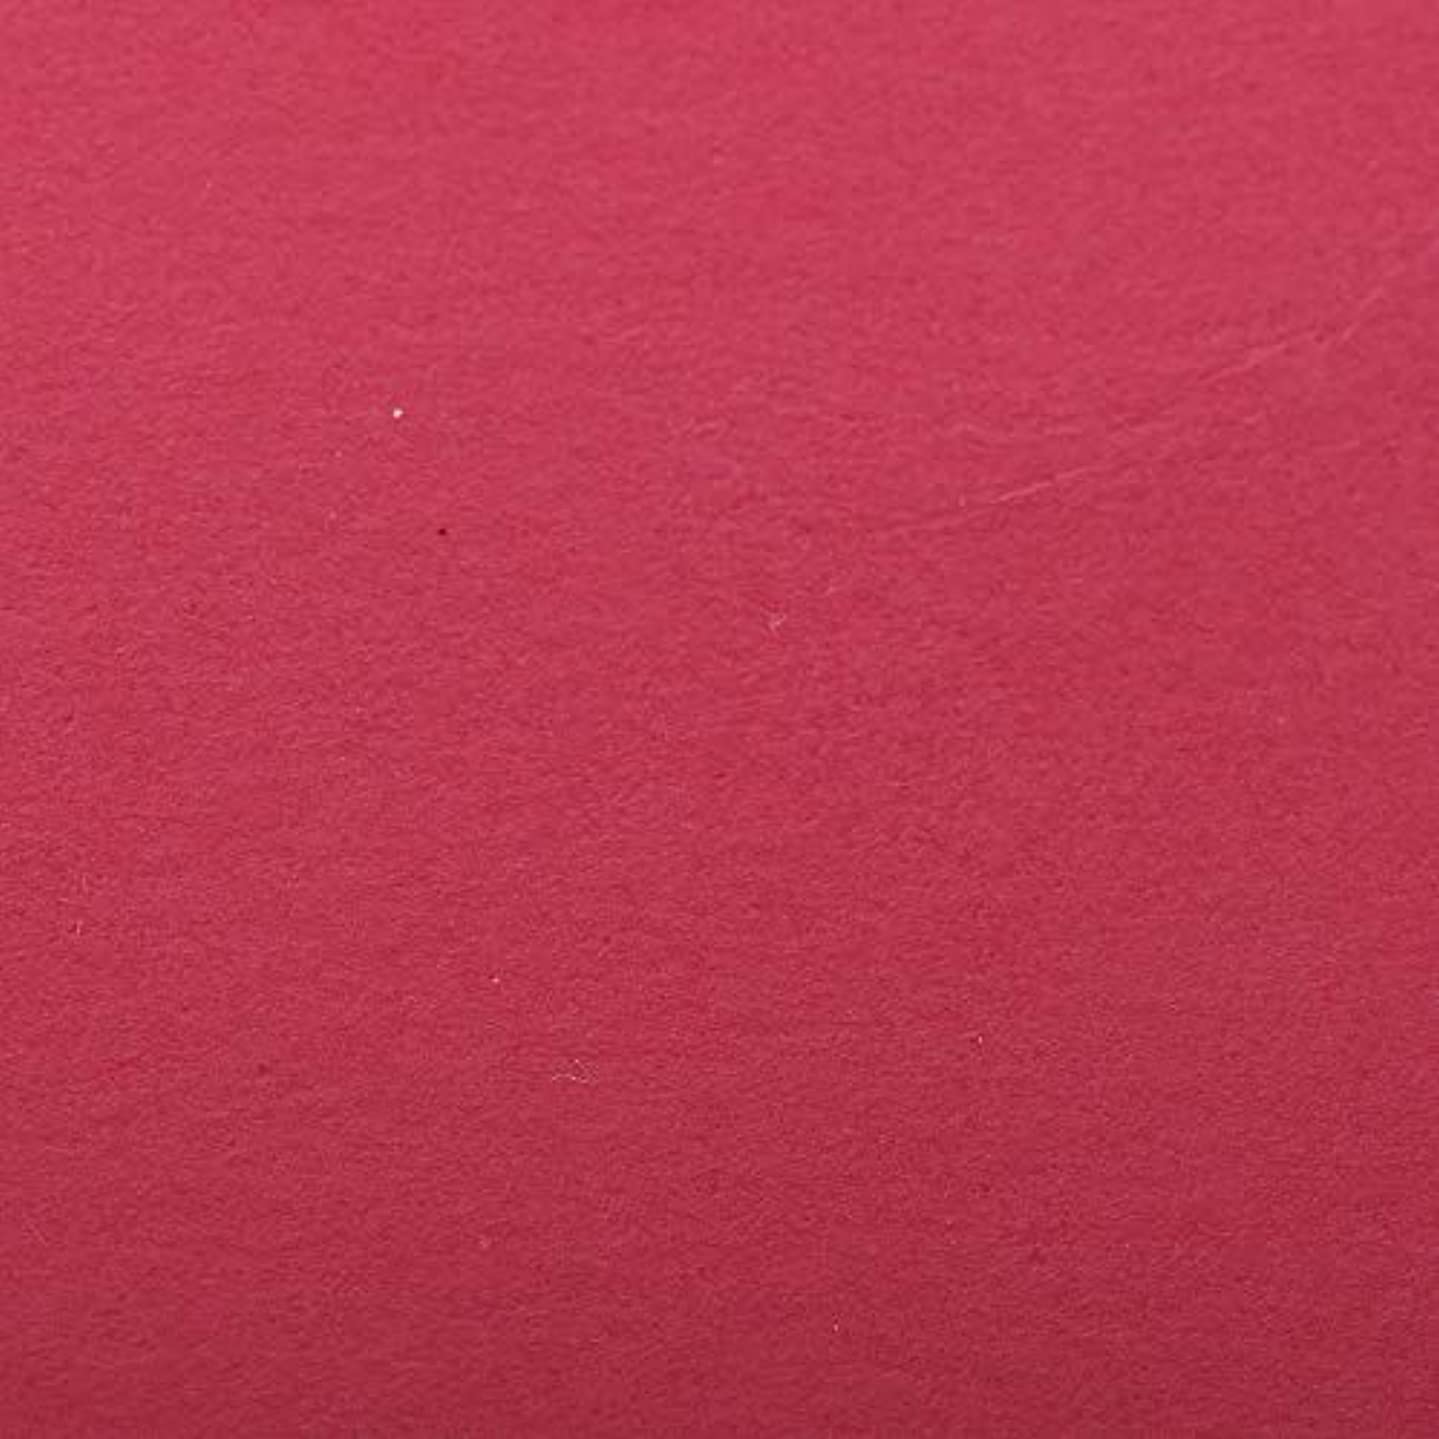 Clairefontaine Etival Coloured Grained Drawing Paper, 160 g, 50 x 65 cm - Intensive Pink, Pack of 24 Sheets